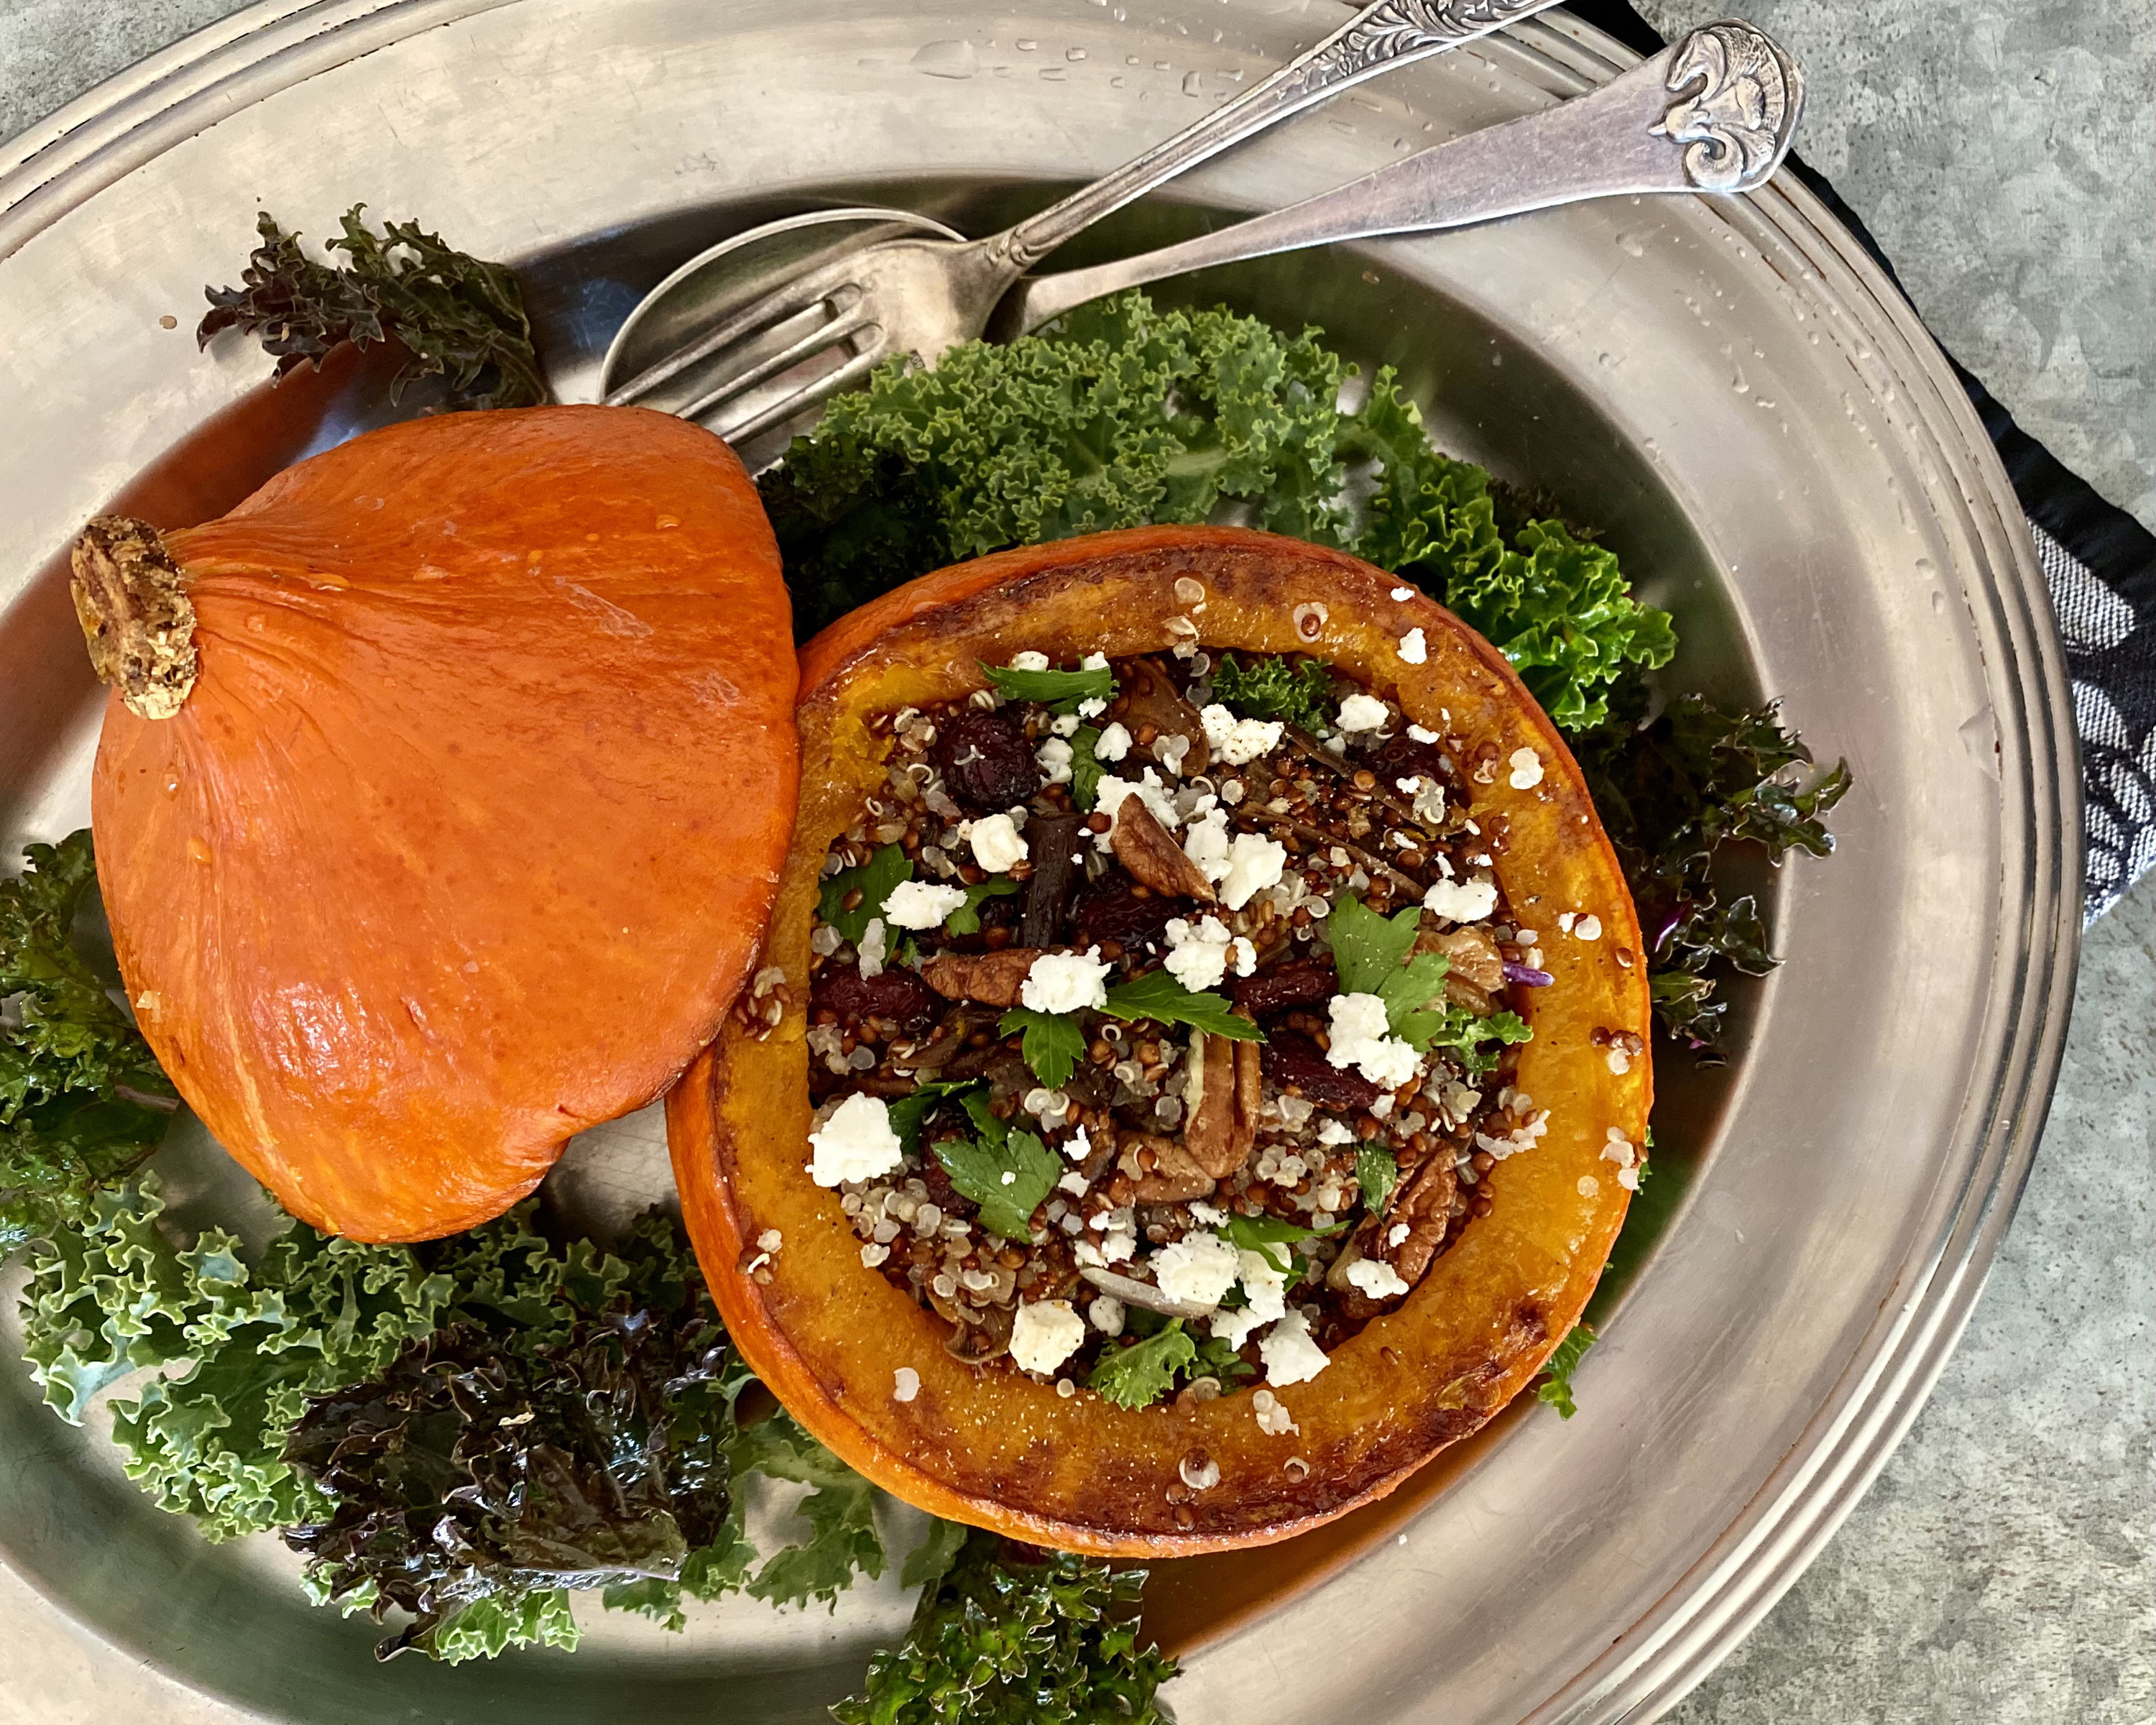 There are a number of squashes that love to be stuffed, including butternut, acorn, sweet pumpkin and kabocha.